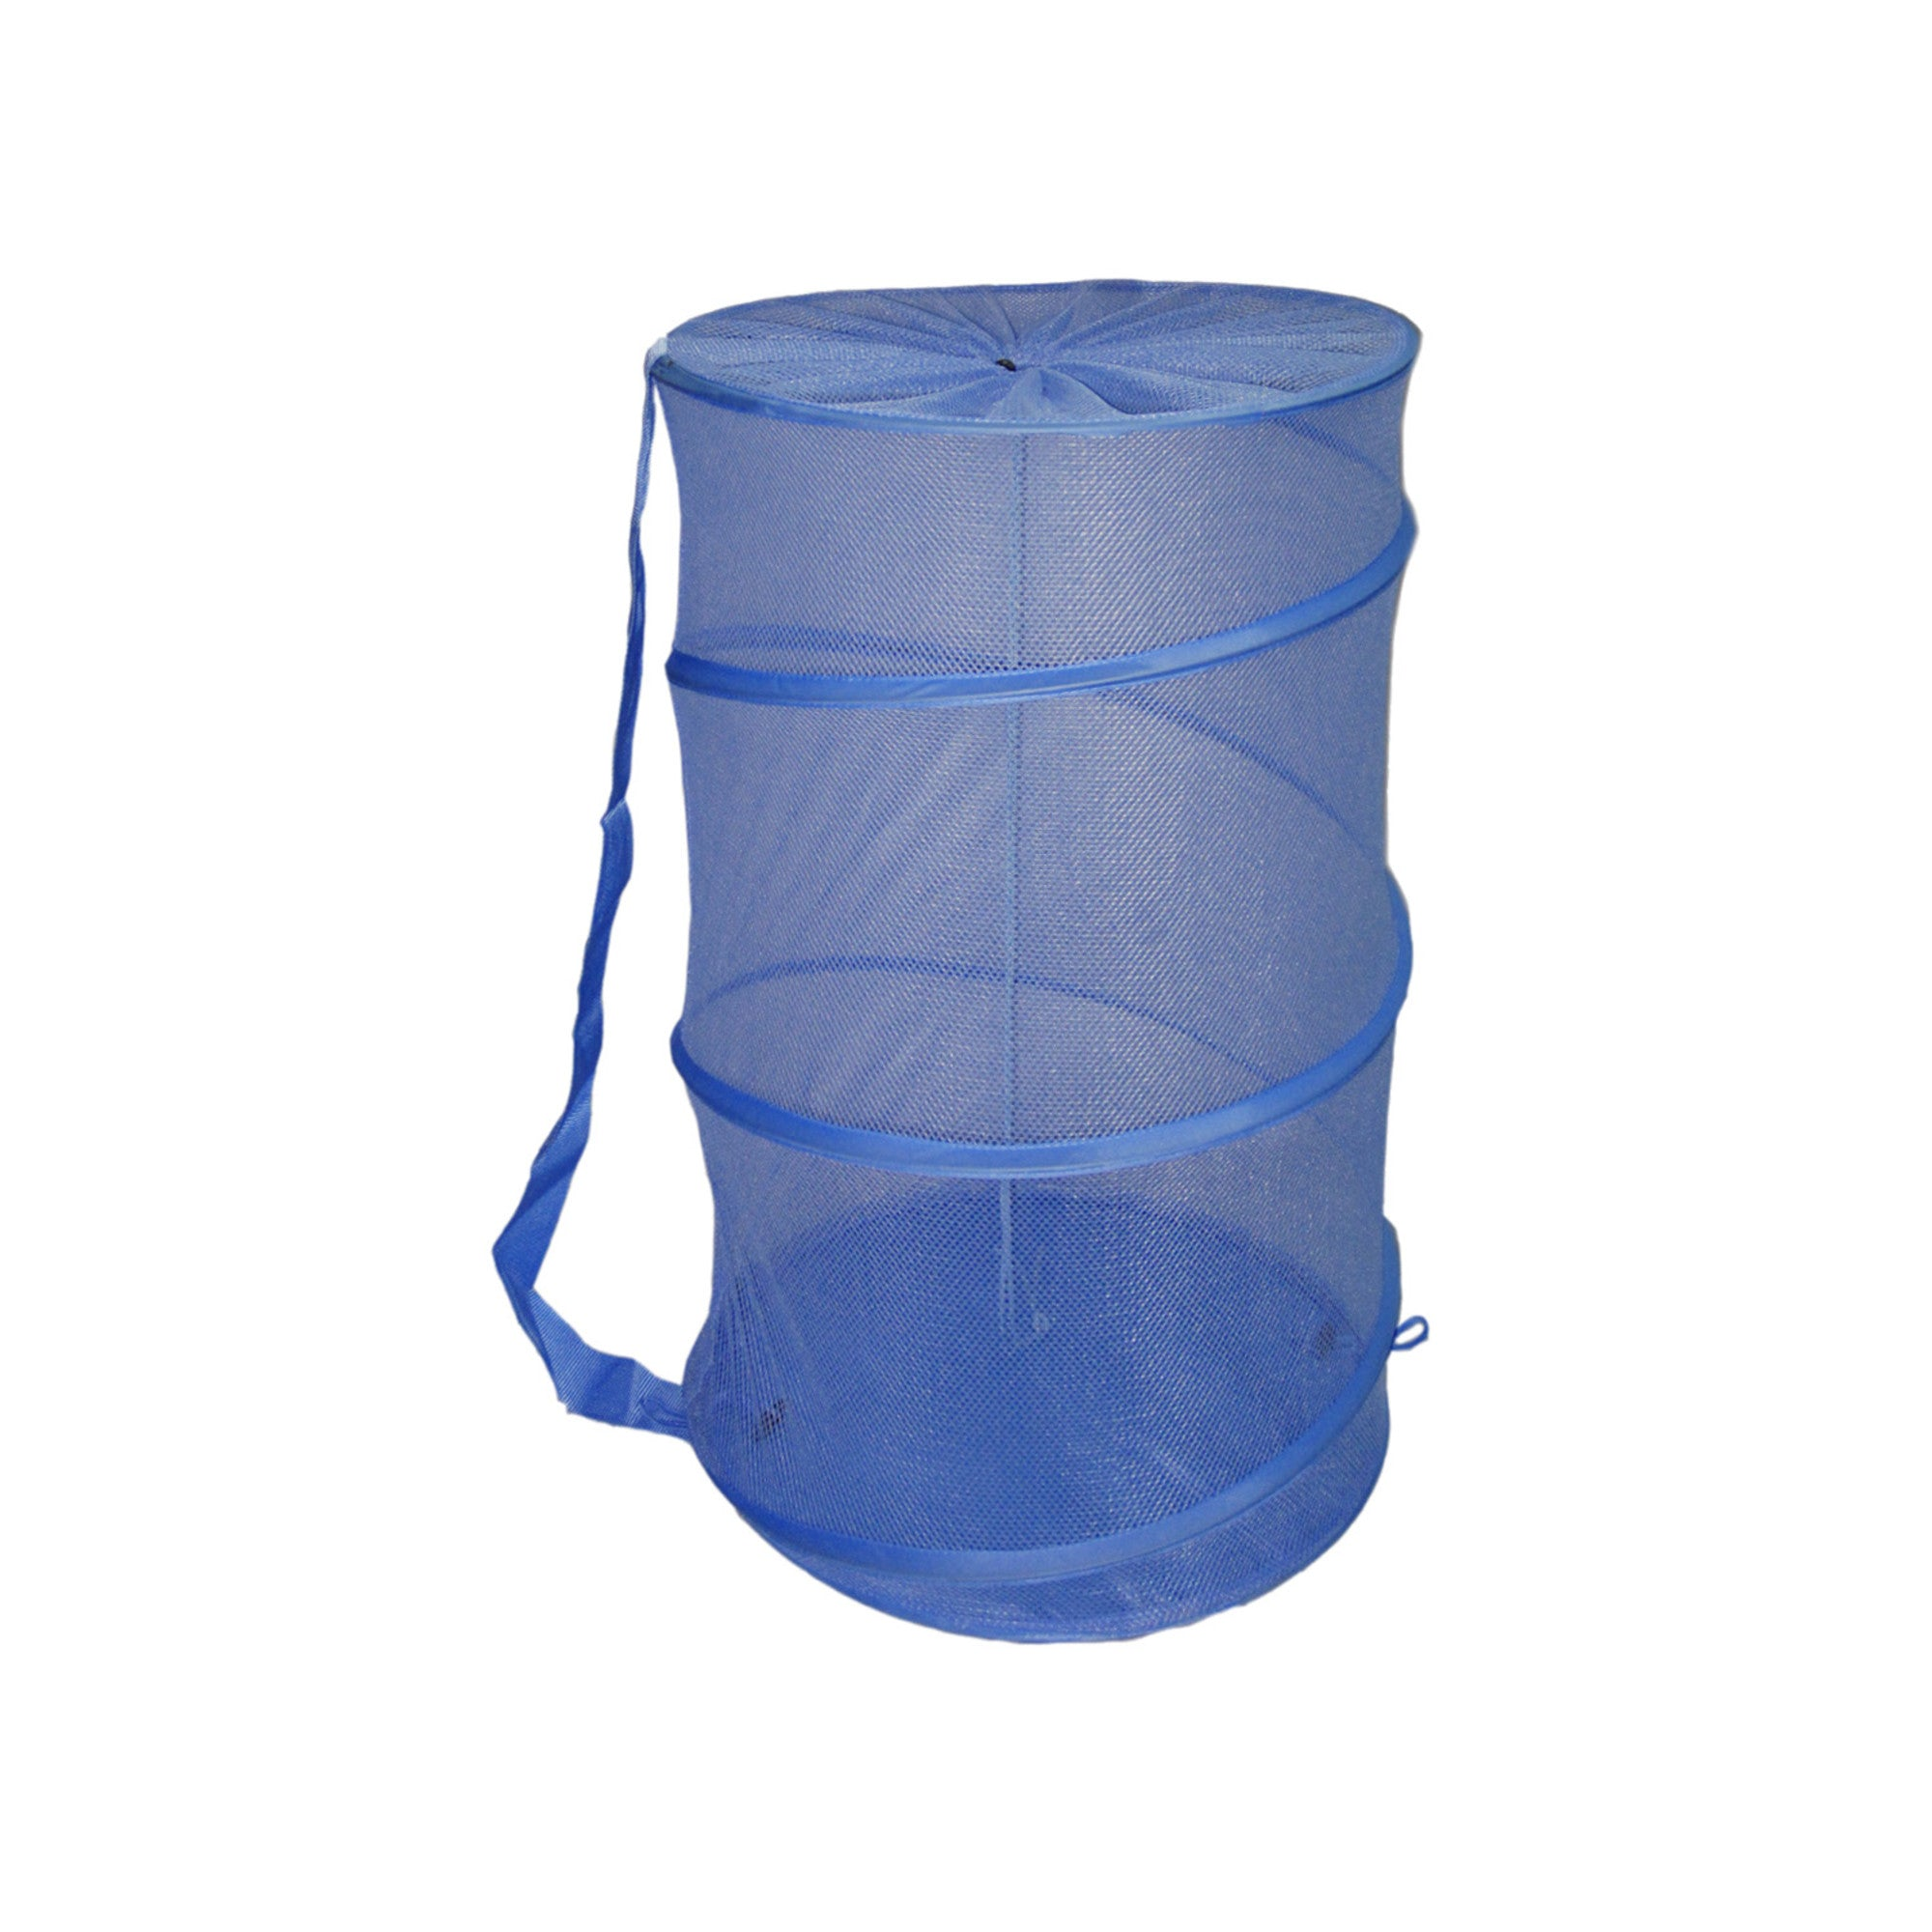 Sunbeam Mesh Barrel Laundry Hamper, Blue - Blue